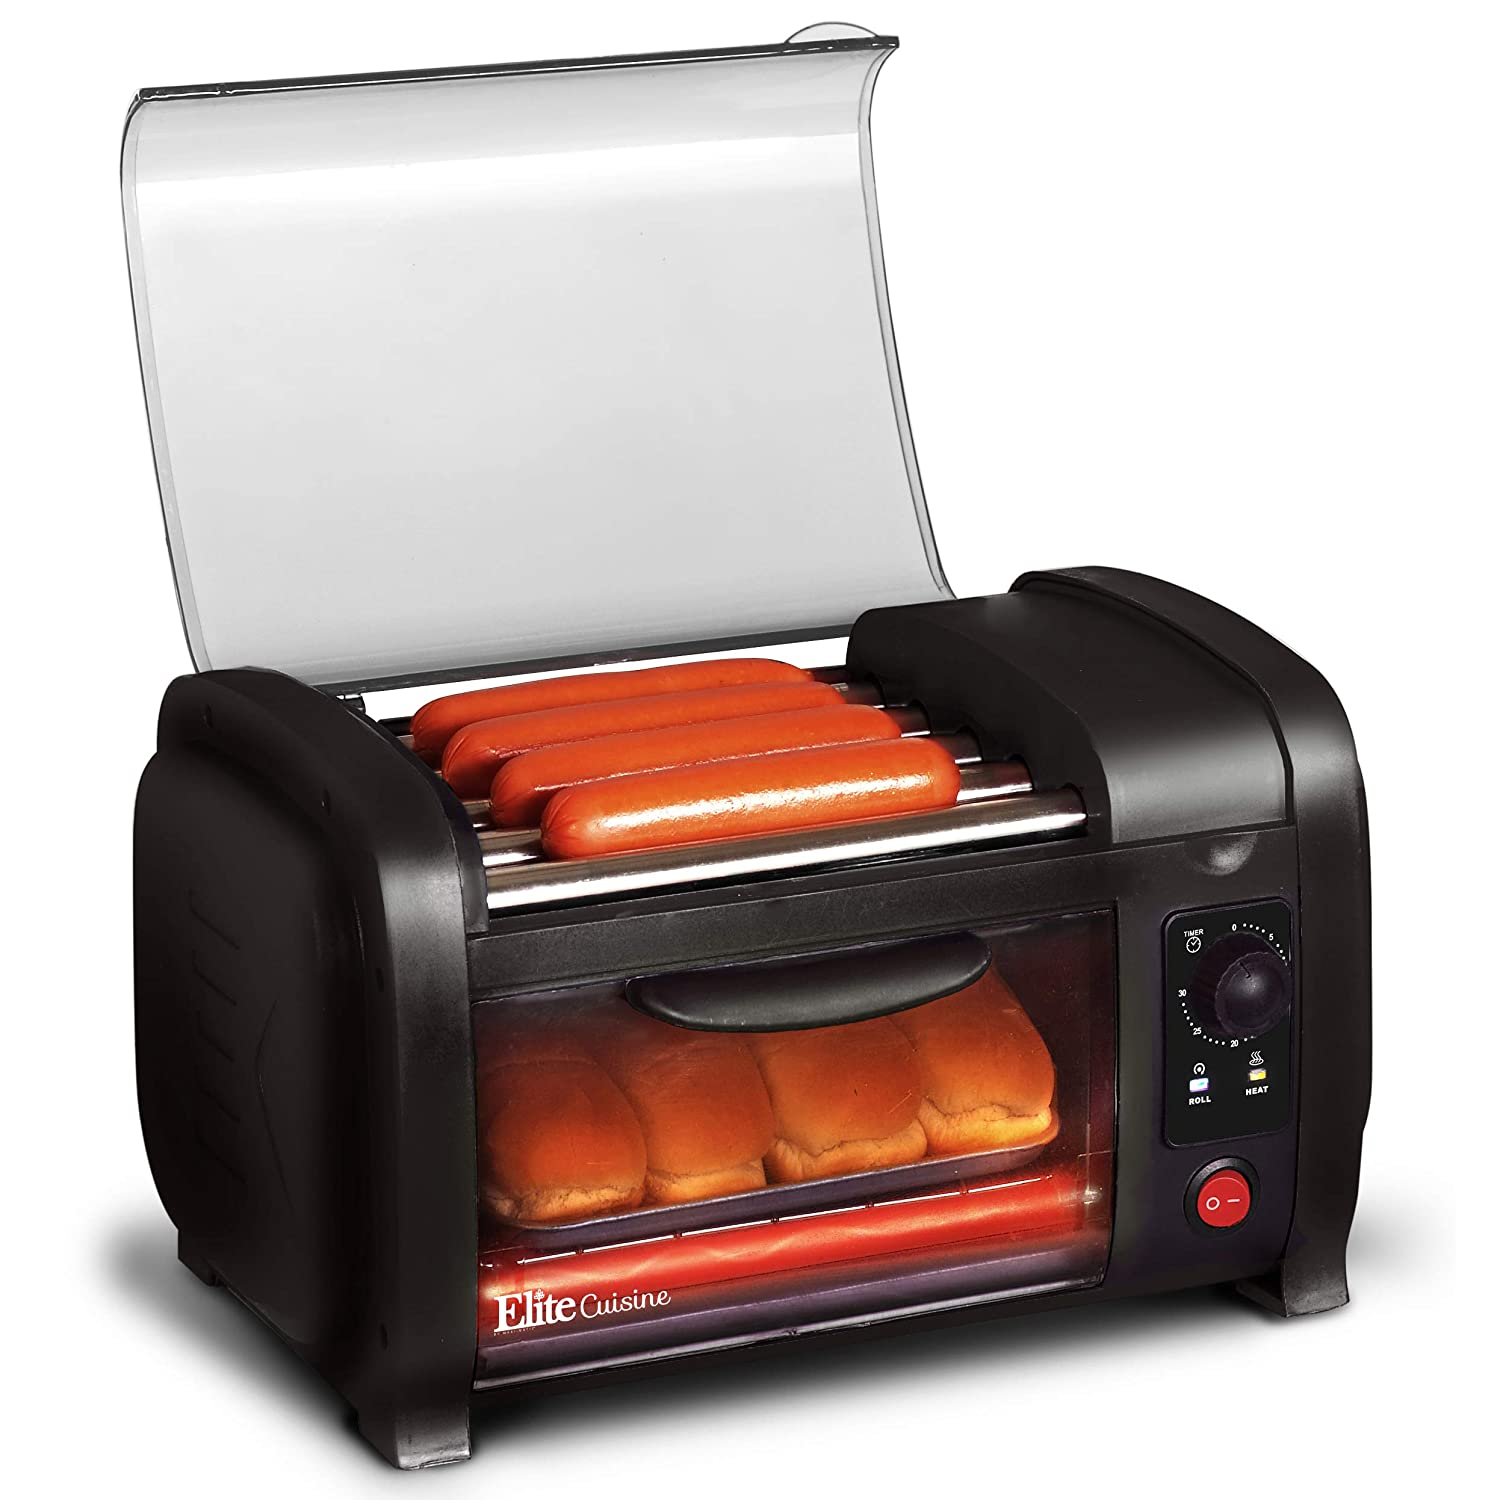 Elite Cuisine EHD-051B Hot Dog Toaster Oven, 30-Min Timer, Stainless Steel Heat Rollers Bake Crumb Tray, World Series Baseball, 4 Bun Capacity, Black